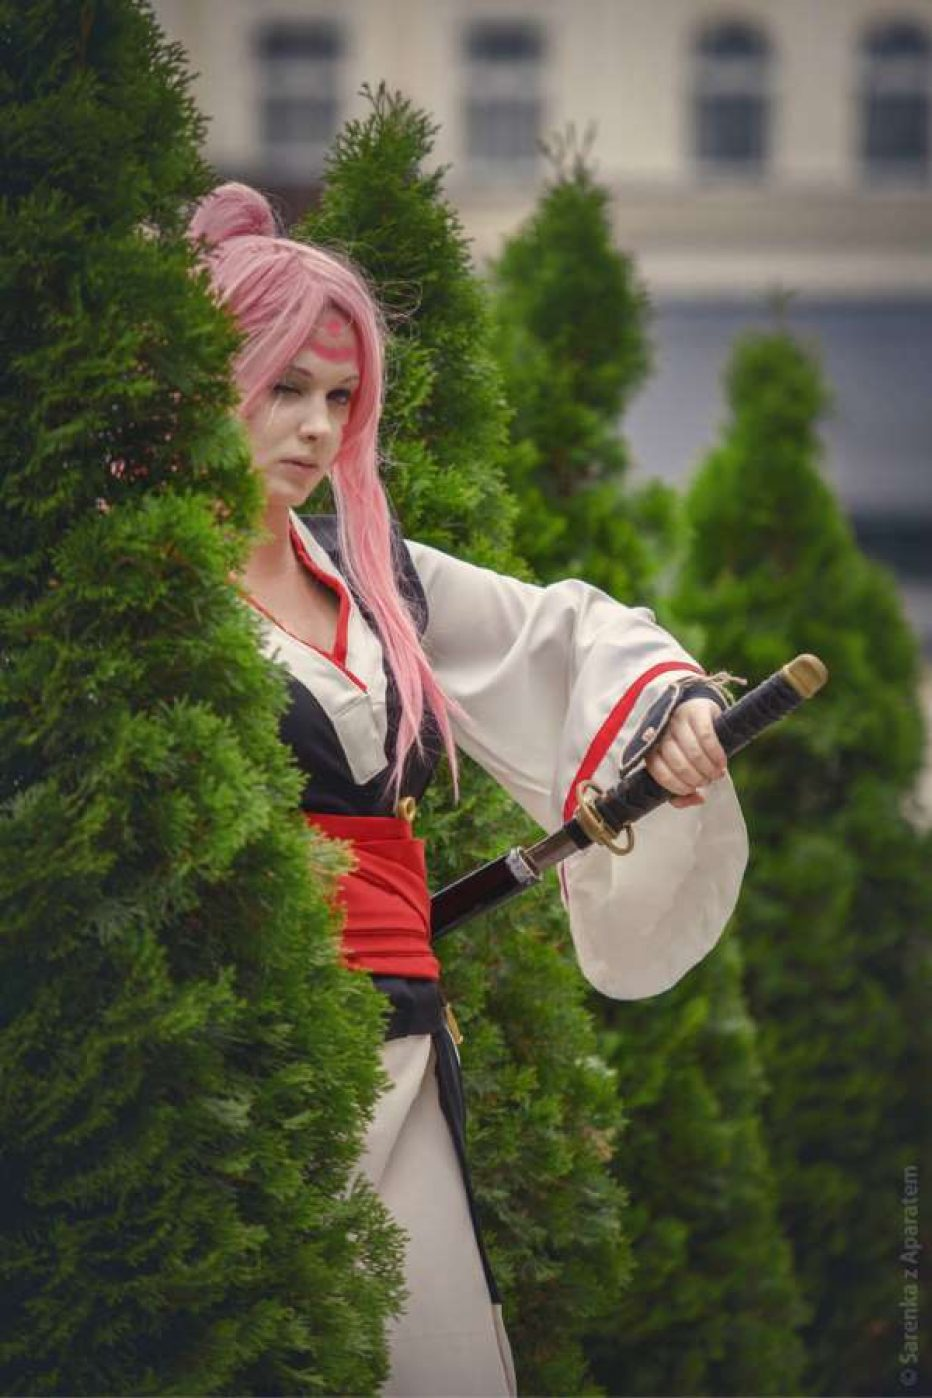 Guilty-Gear-Baiken-Cosplay-Gamers-Heroes-2.jpg